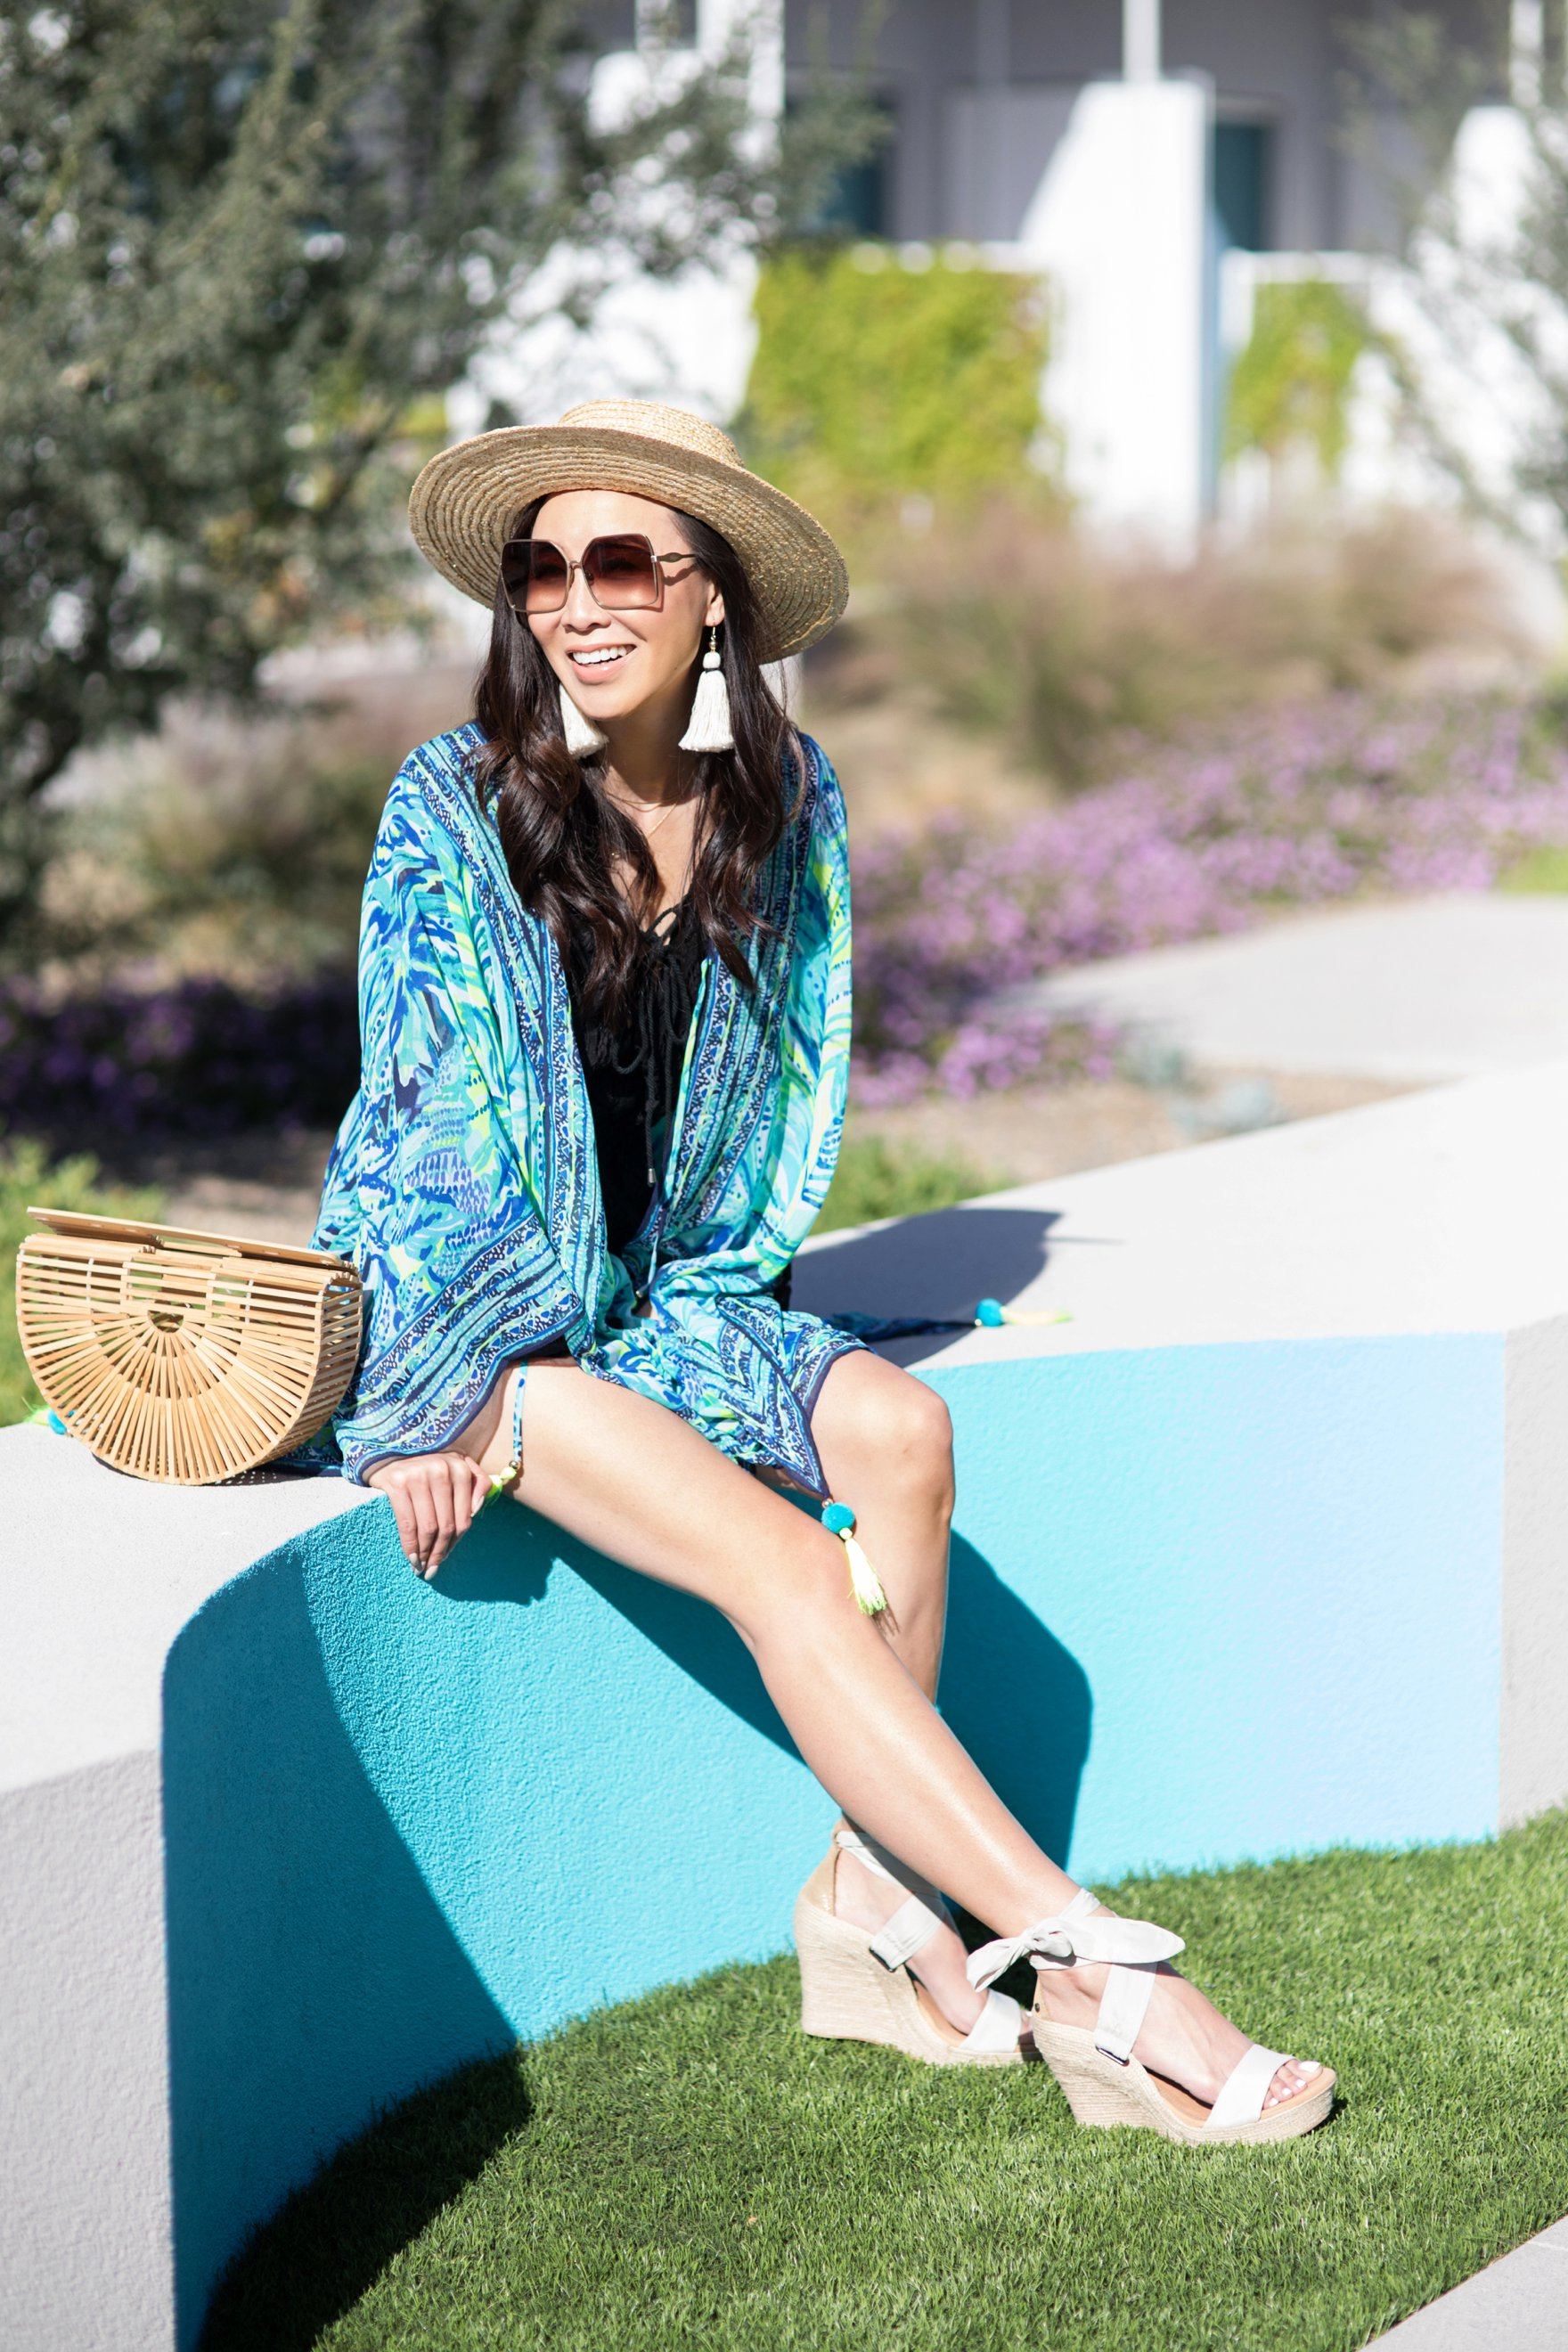 ANYA KIMONO Lilly Pulitzer resort style tassel earrings on Diana Elizabeth